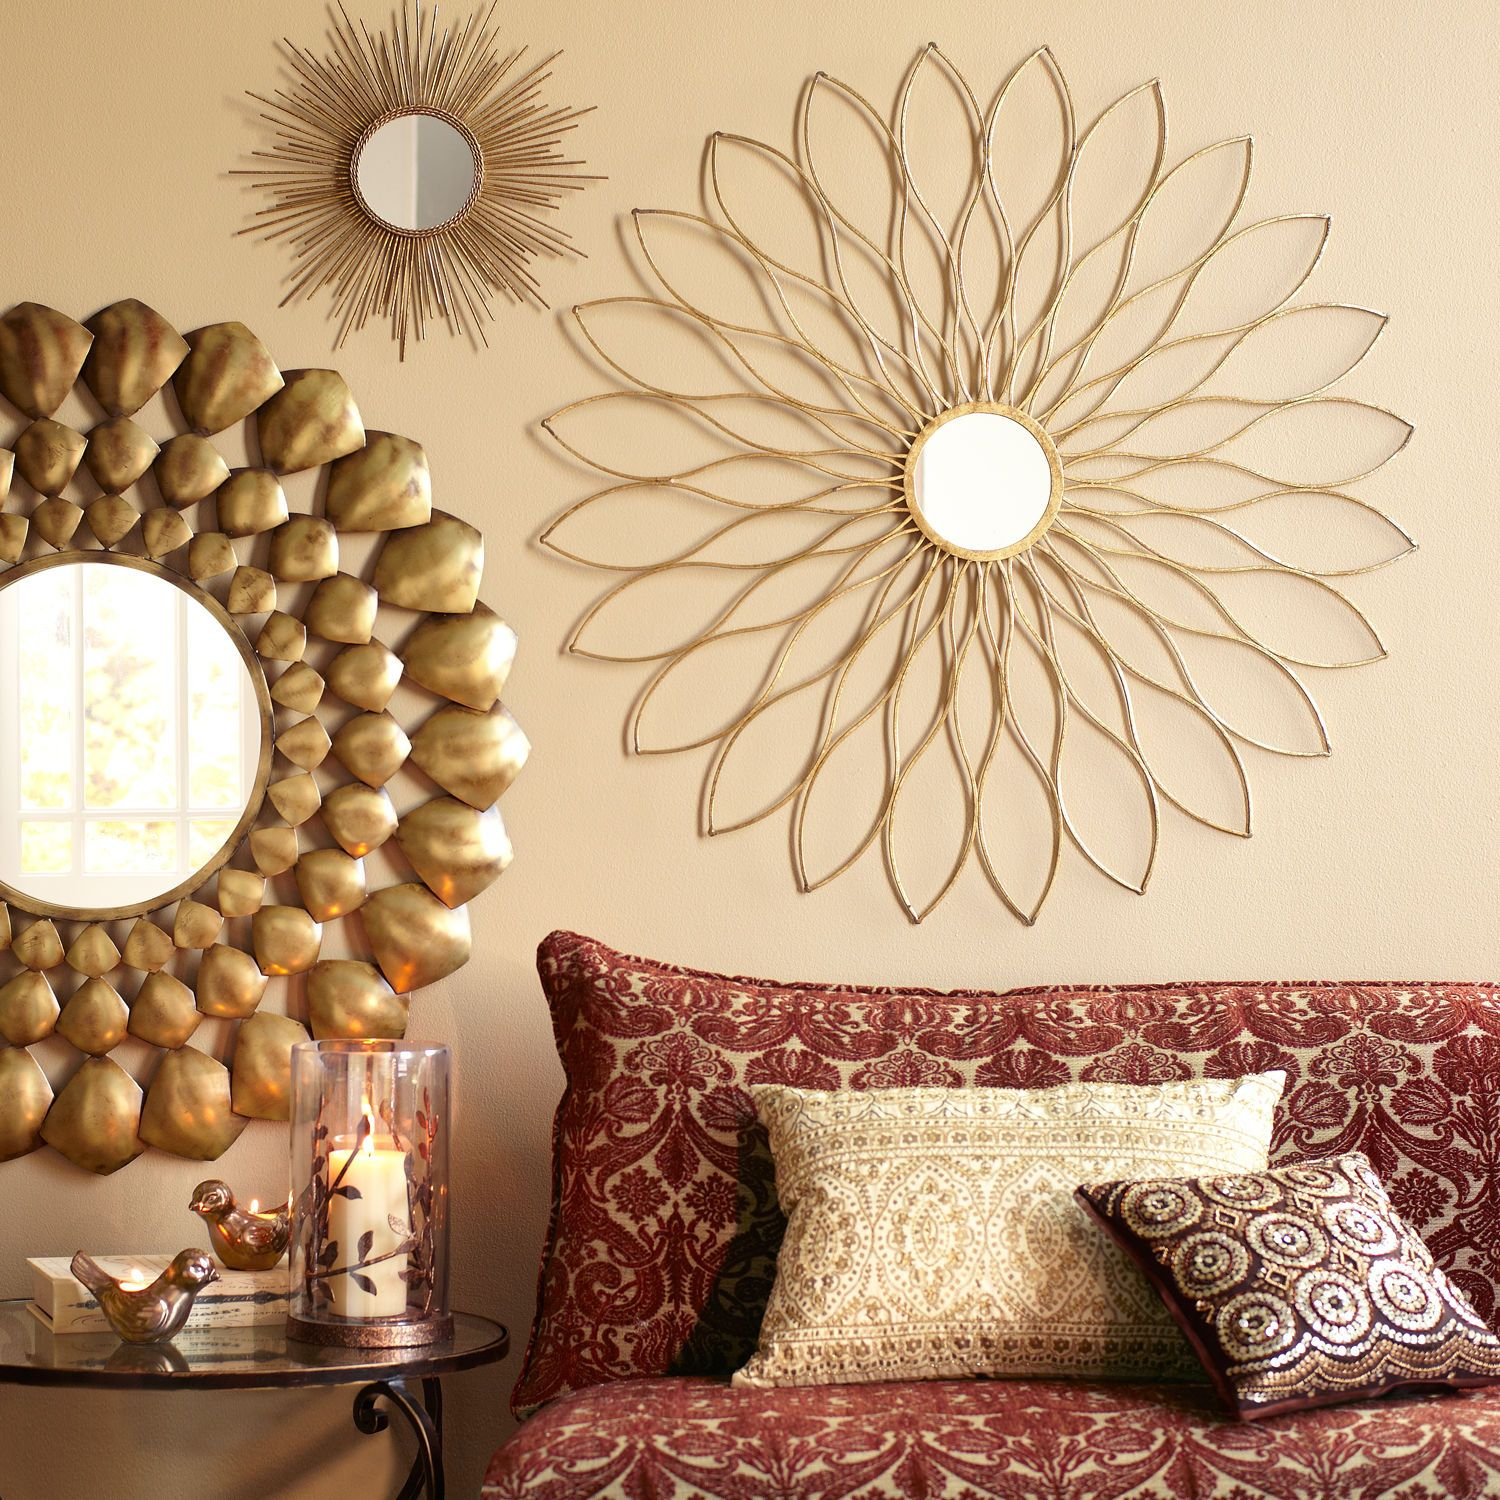 Golden Petals Wall Decor Mirrors | Apartment | Pinterest | Wall ...